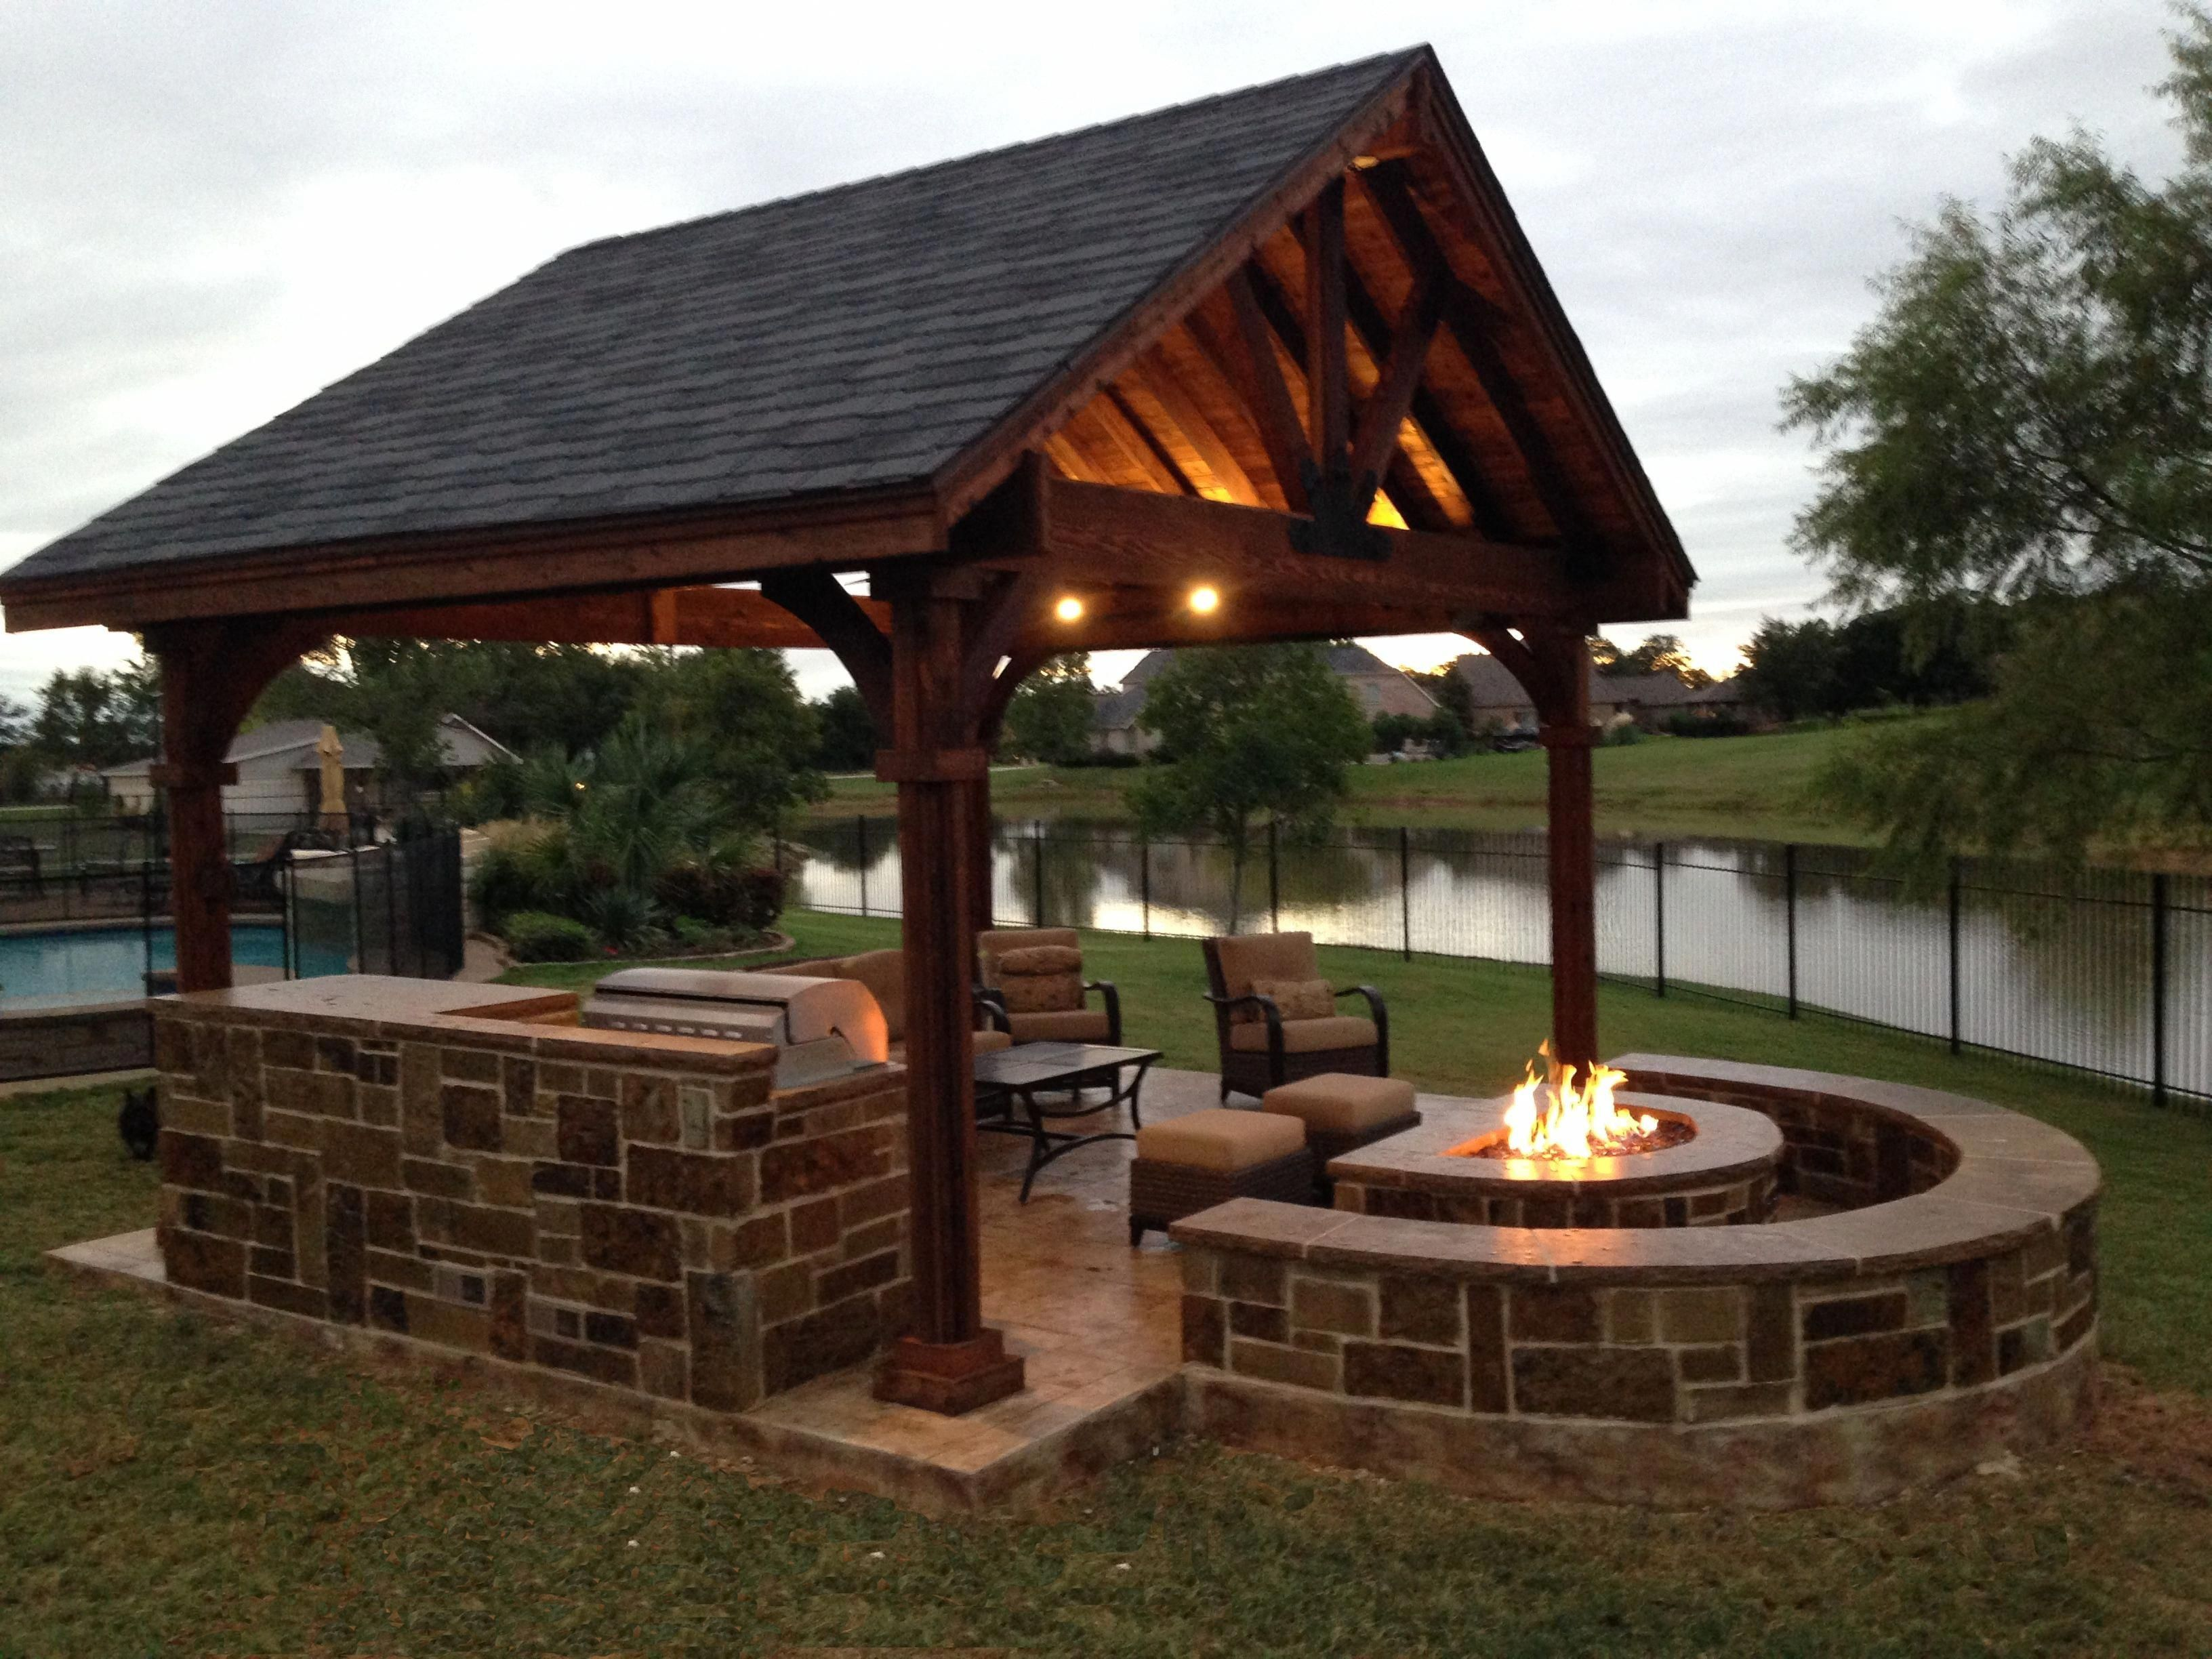 Or Attached Like This Outdoor Kitchen Fire Pit Seating Area Outdoorkitchendesignsideas Backyard Gazebo Backyard Fire Backyard Patio